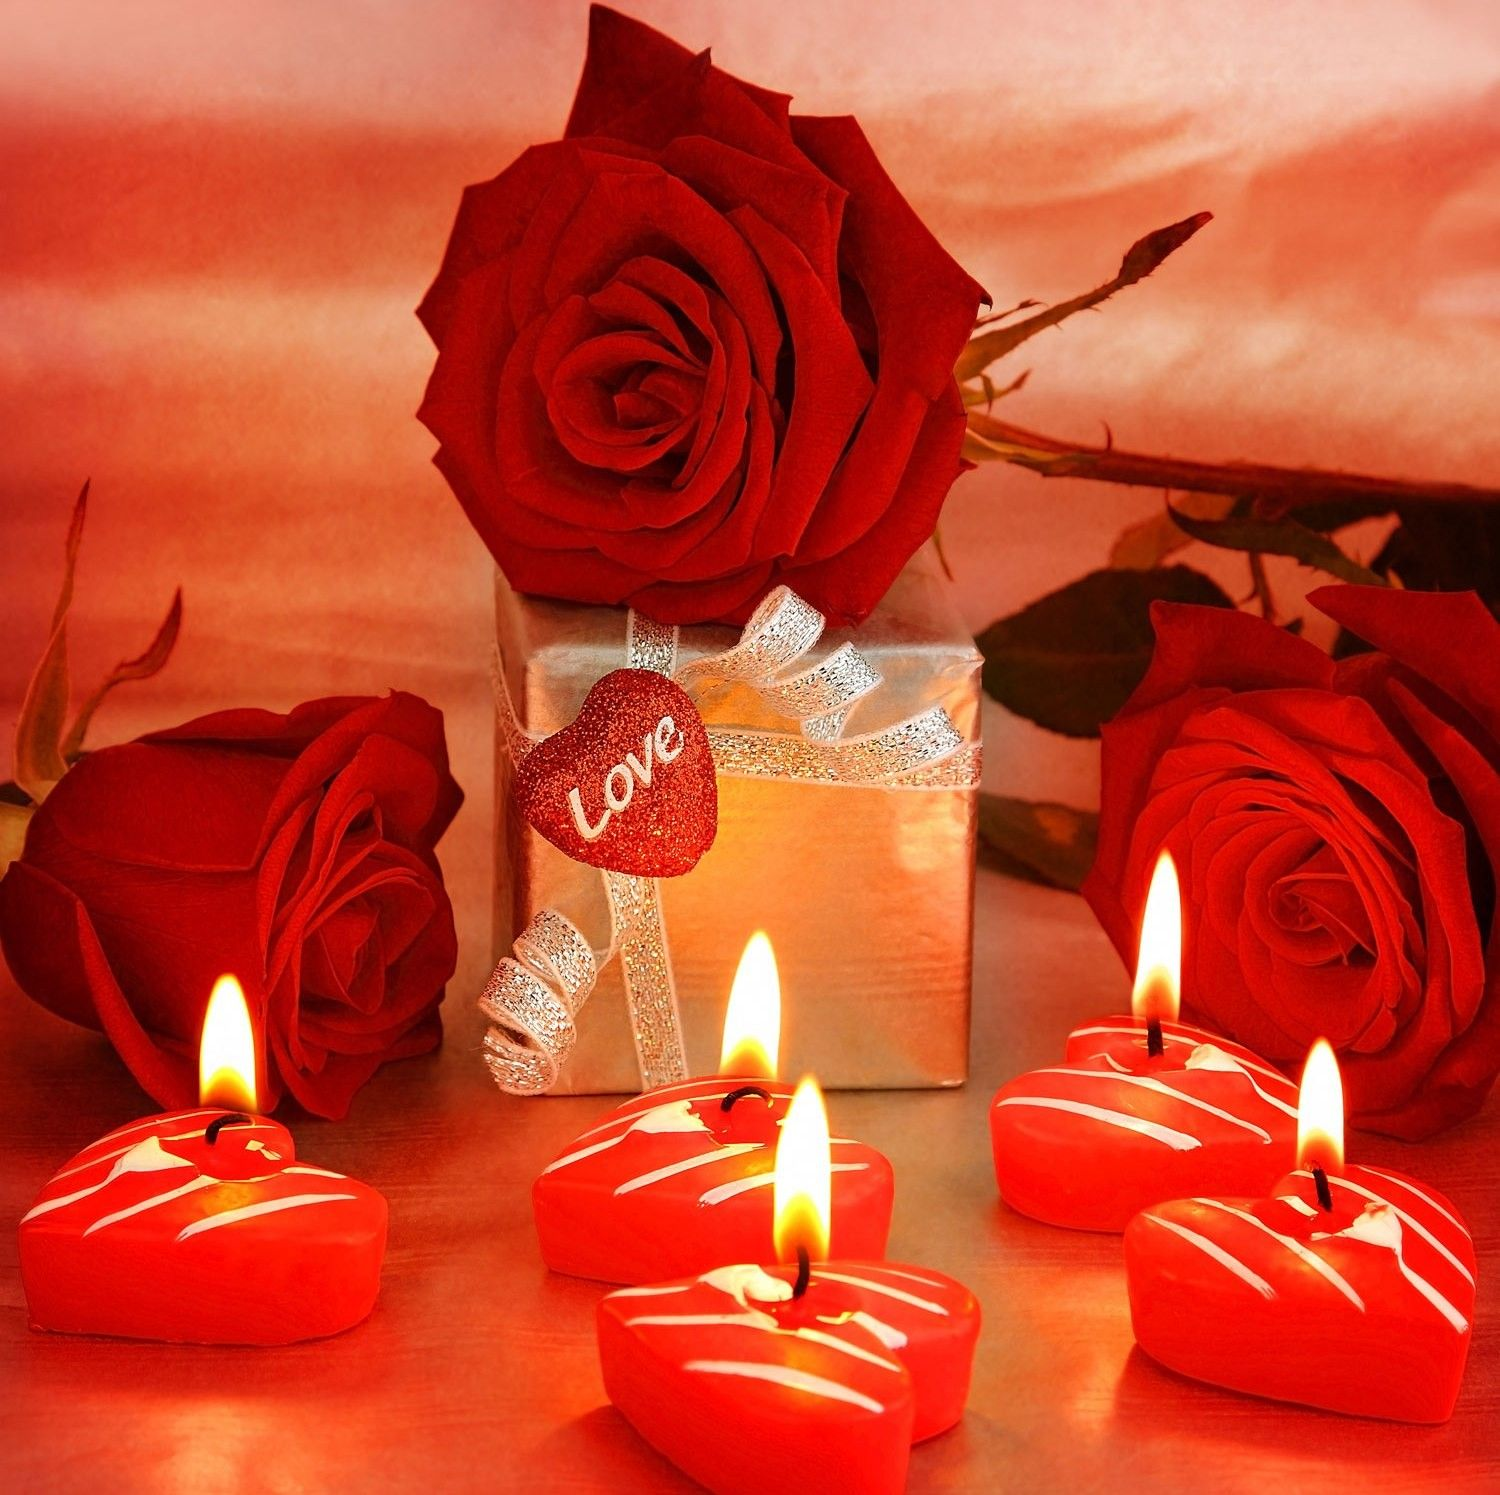 Flower: Love Flower Candles Romantic Red Rose Wallpaper Apple HD 16 ...